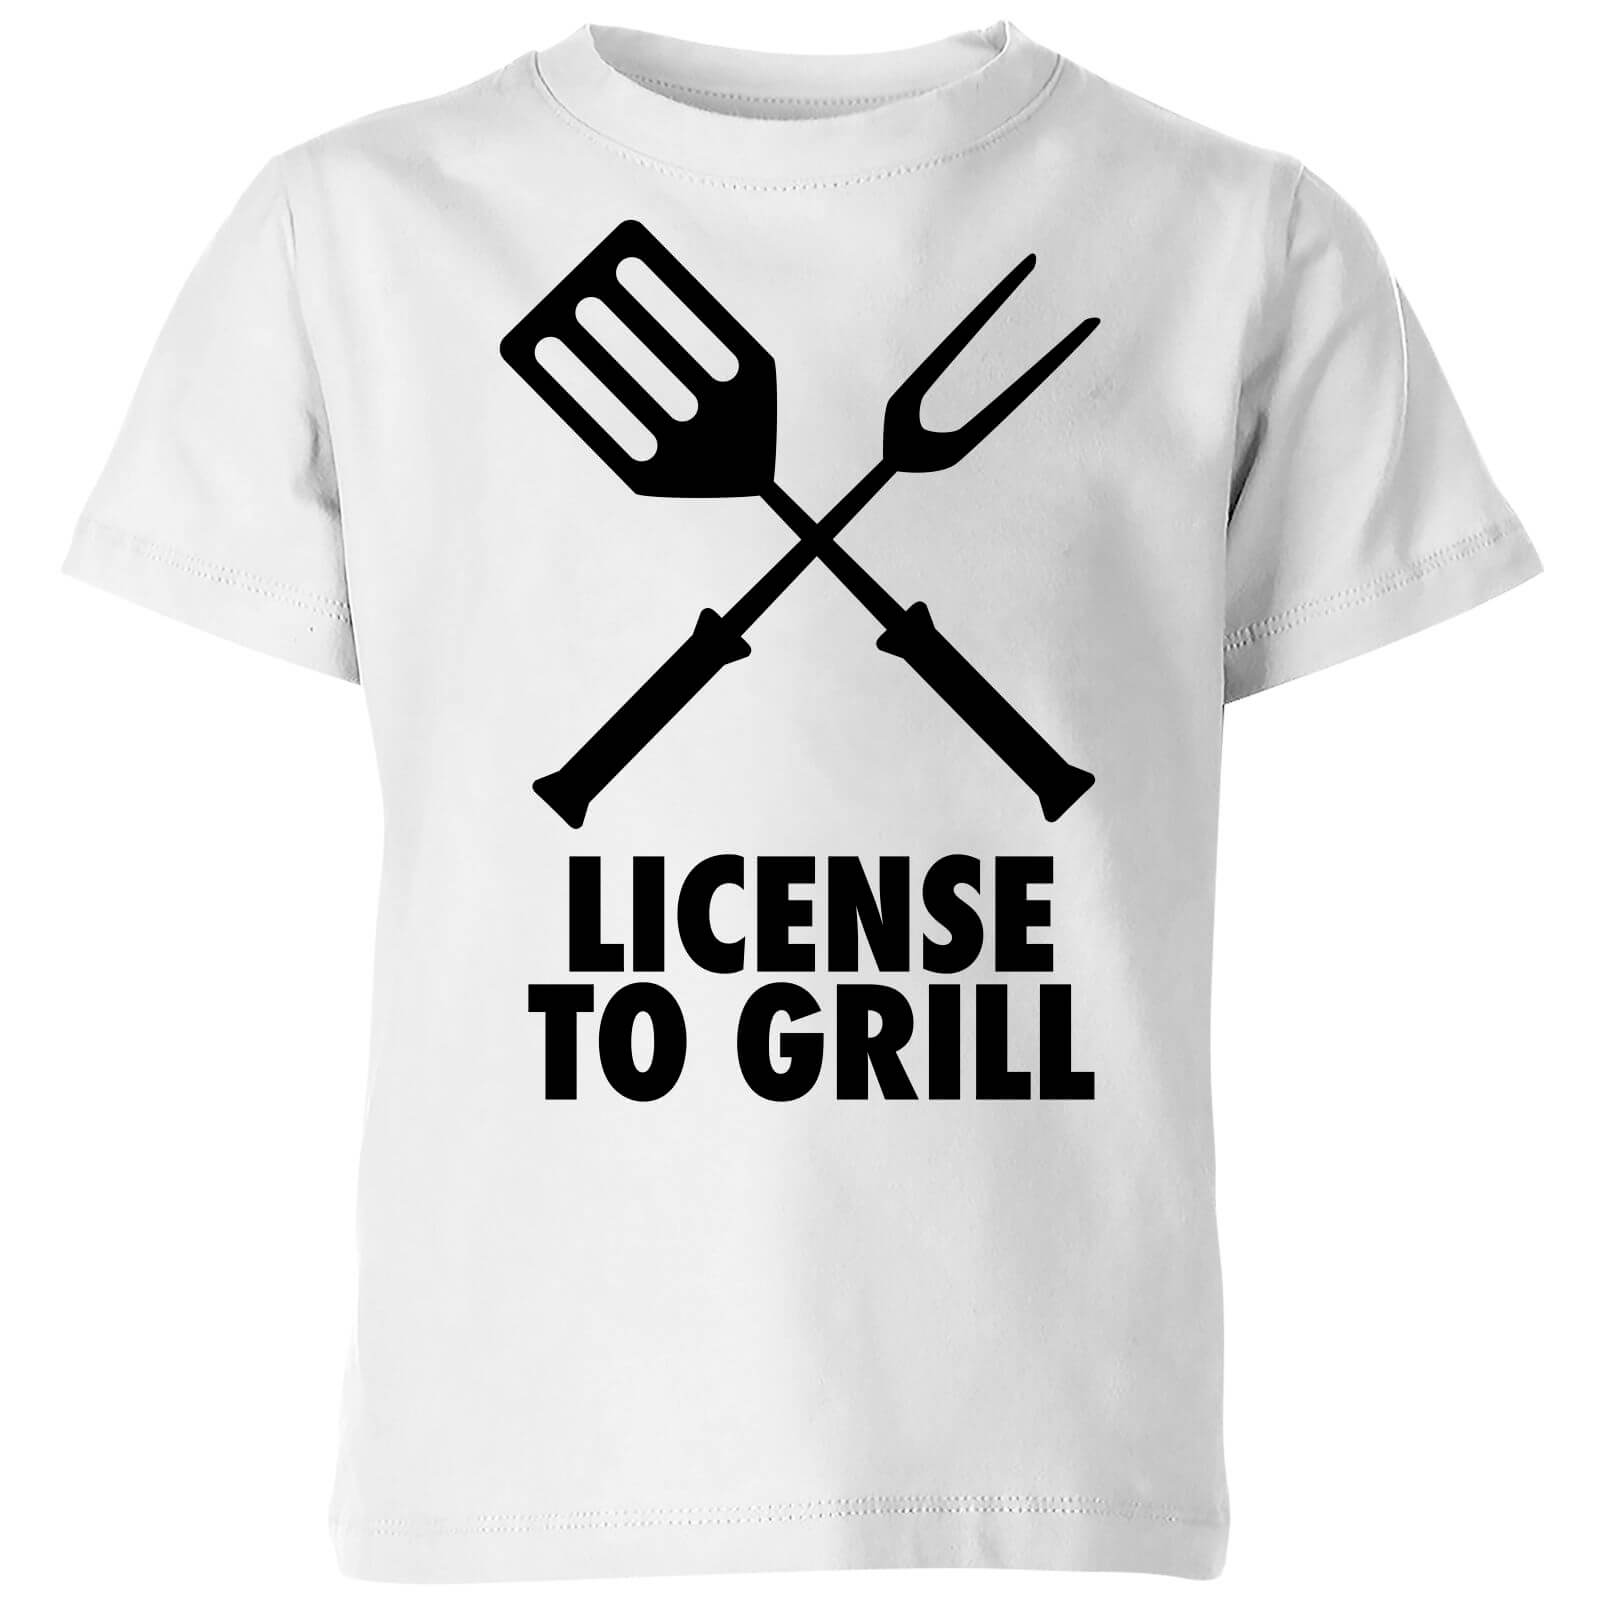 License to Grill Kids